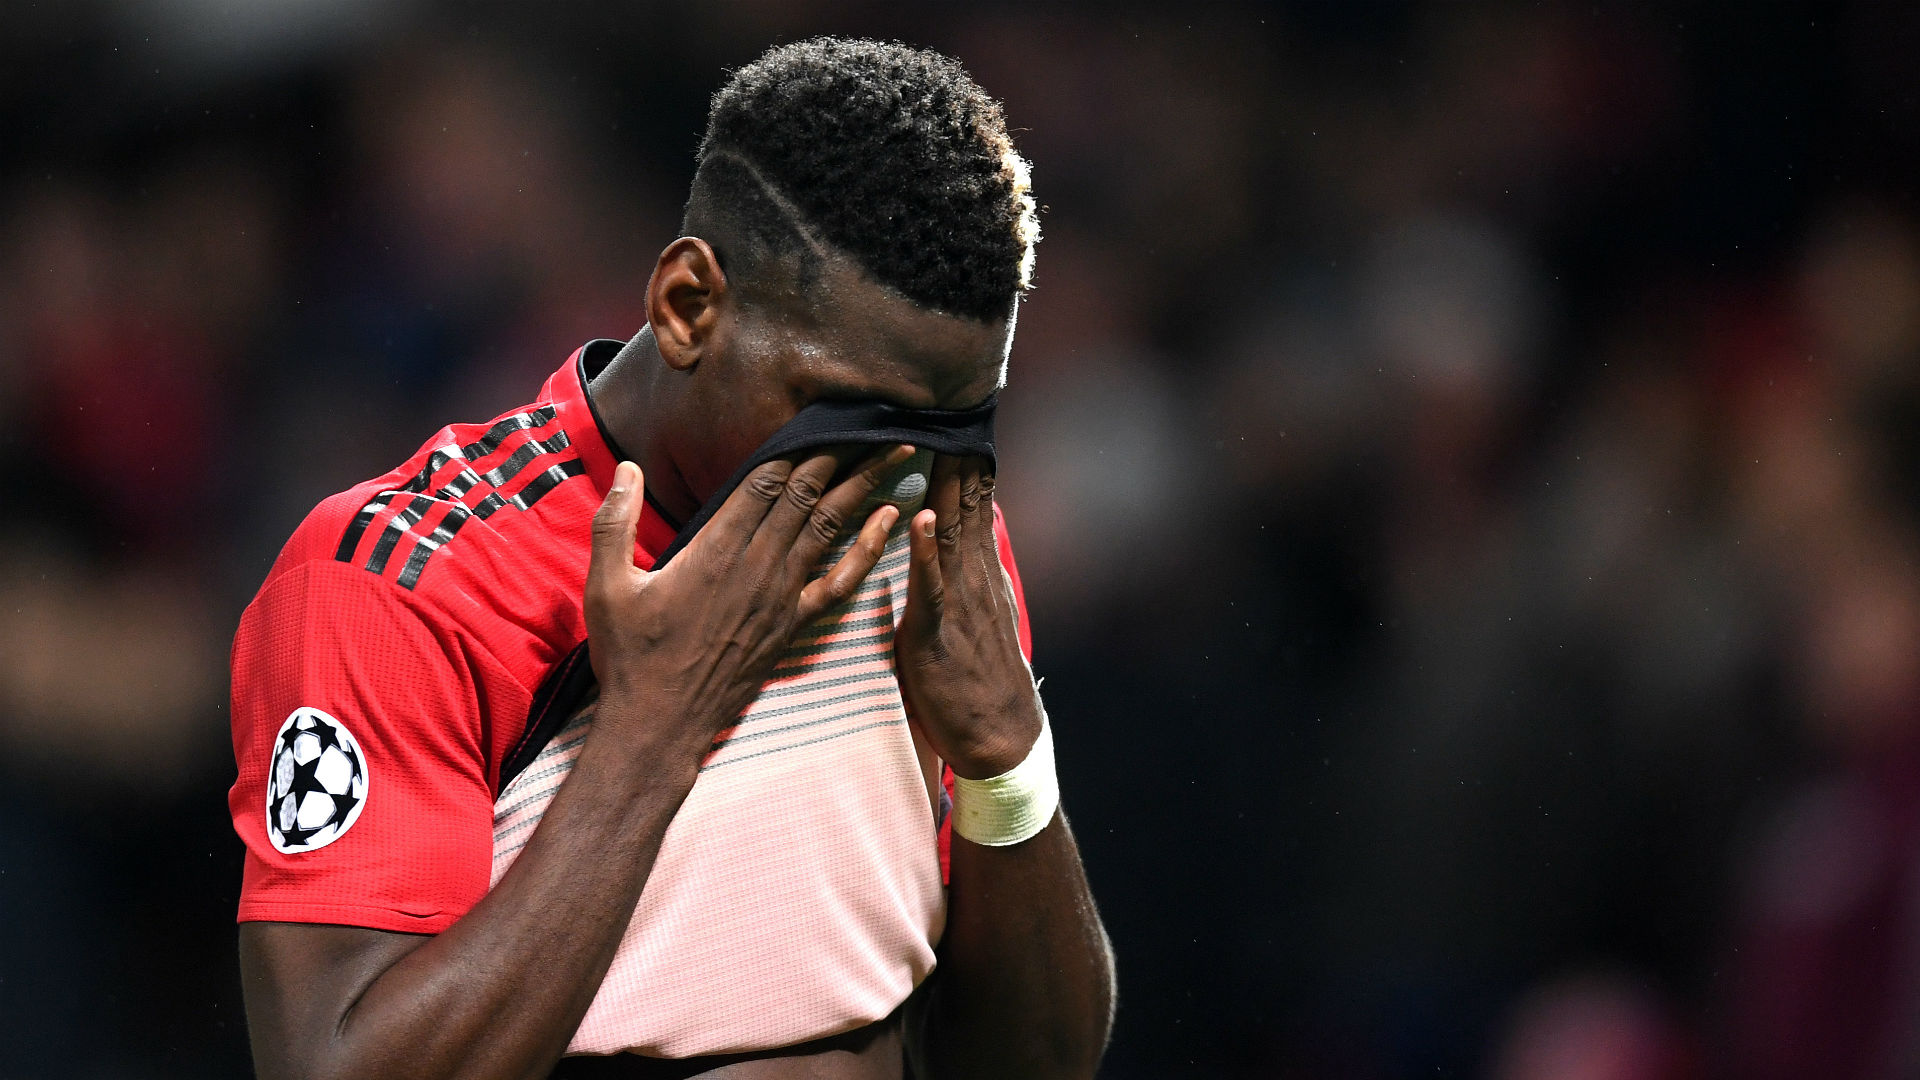 Paul Pogba: Man Utd midfielder takes 26-step penalty against Everton